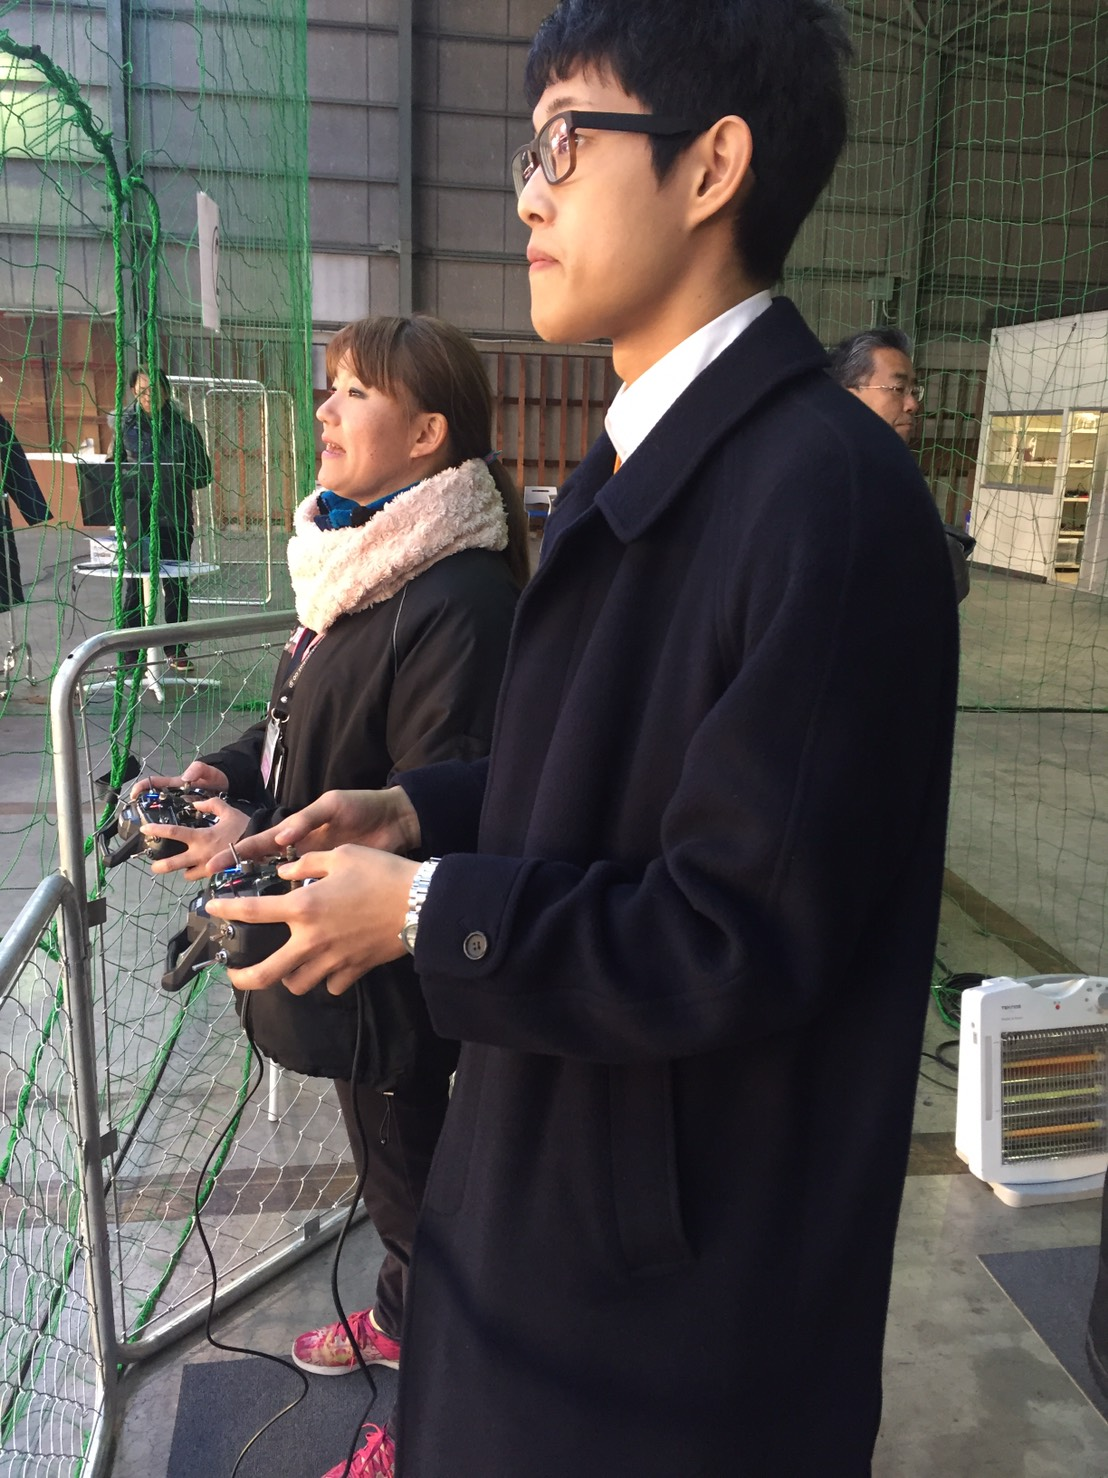 receiving an introduction on how to operate a drone from the instructor at the Tokyo branch of Drone School Japan